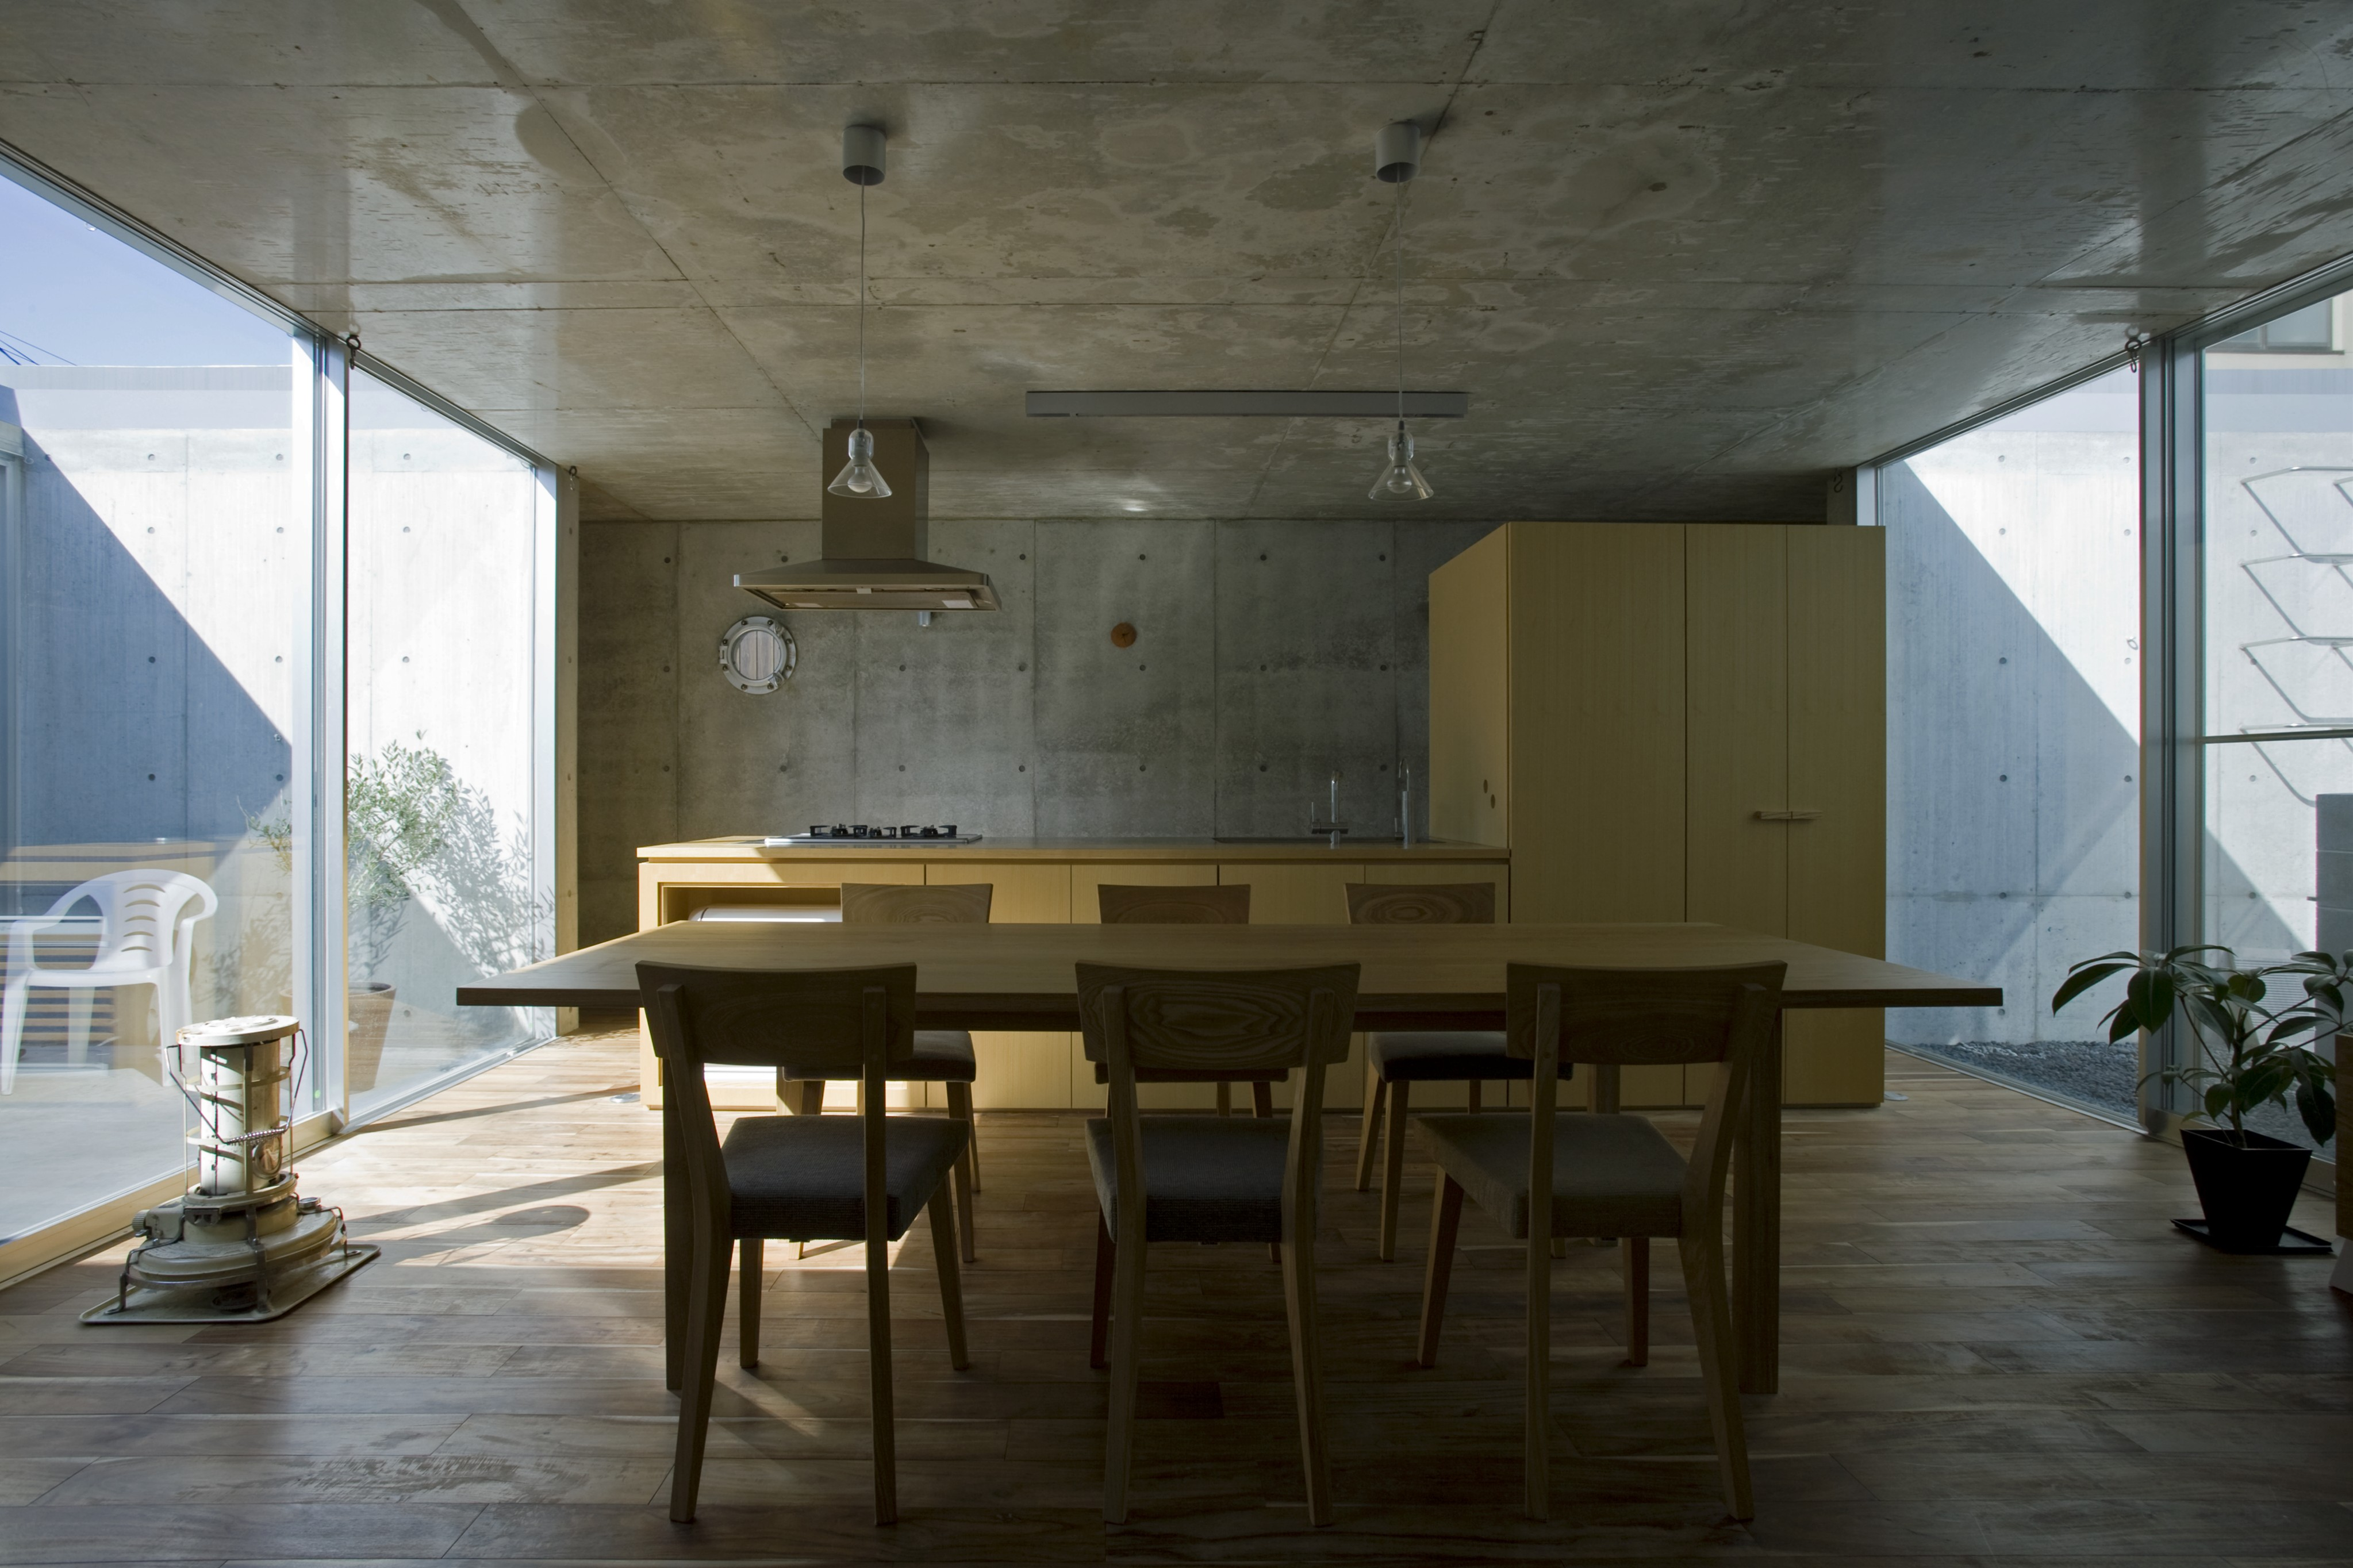 Straight on view of the kitchen and dining area. Here we see the light natural wood tones of the cabinetry and kitchen island, plus the dining set, standing out amidst the concrete grey structure.